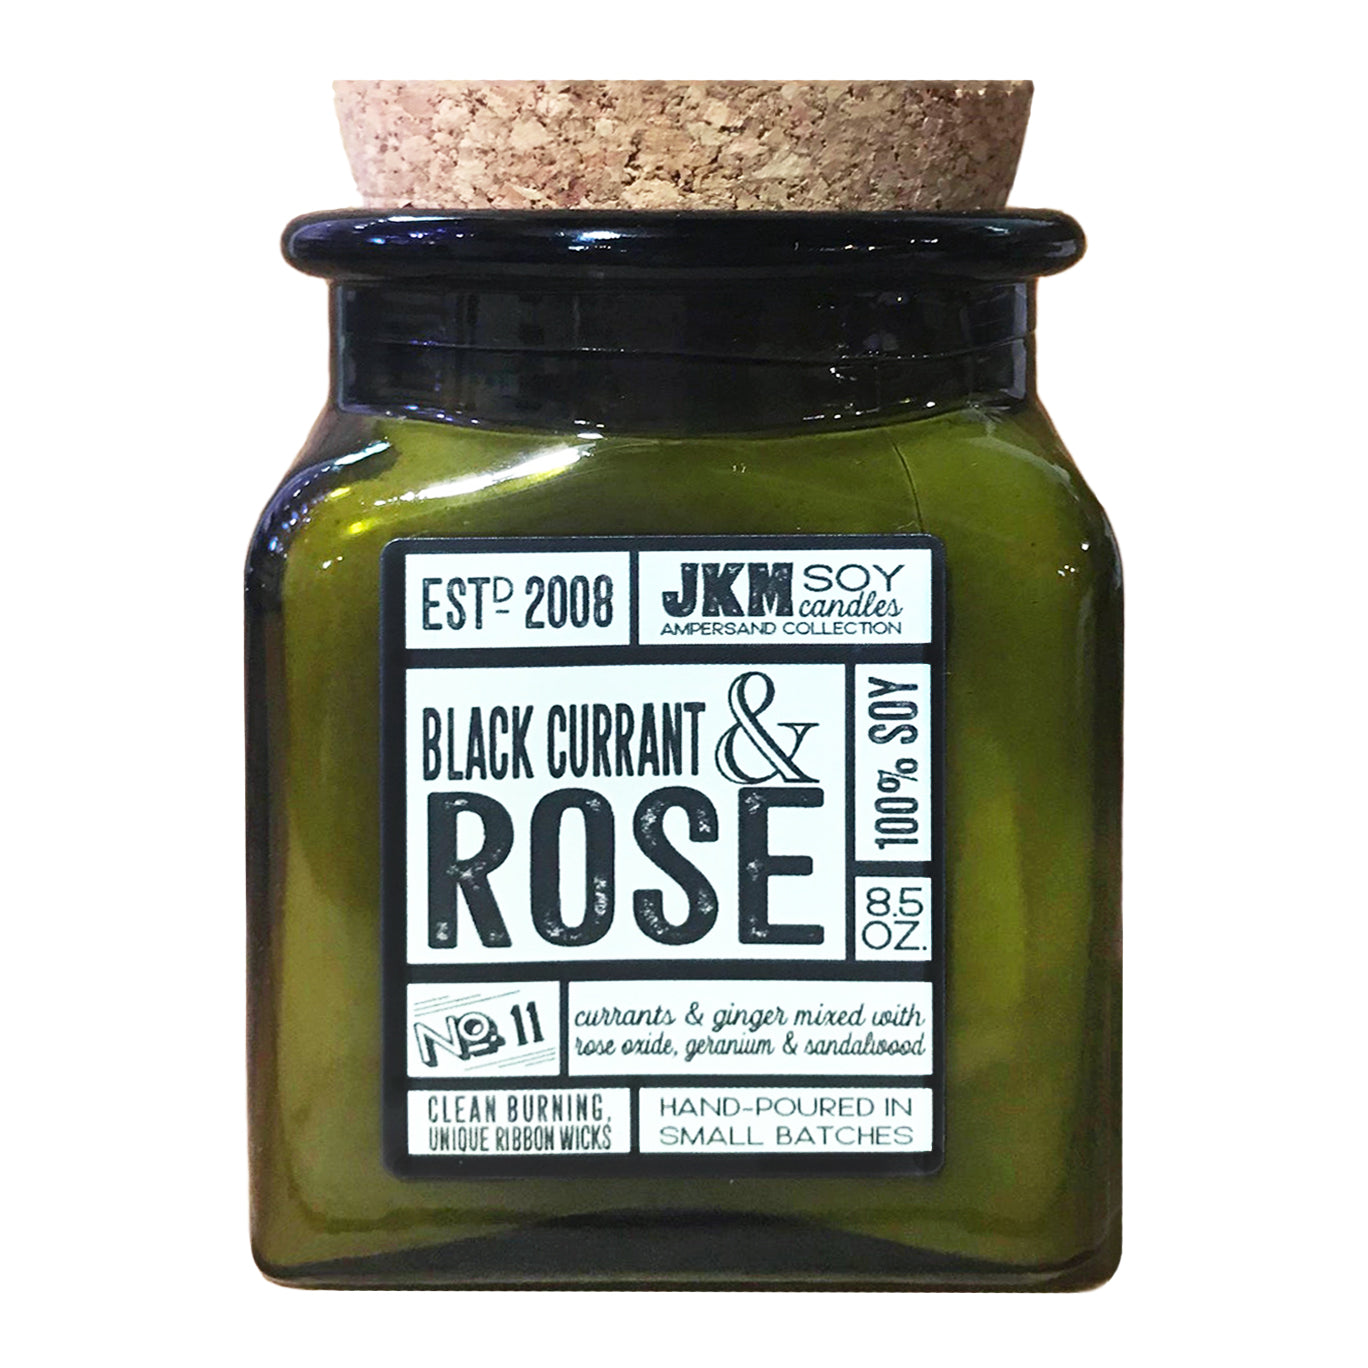 JKM Black Currant & Rose Soy Candle - 8.5 oz.